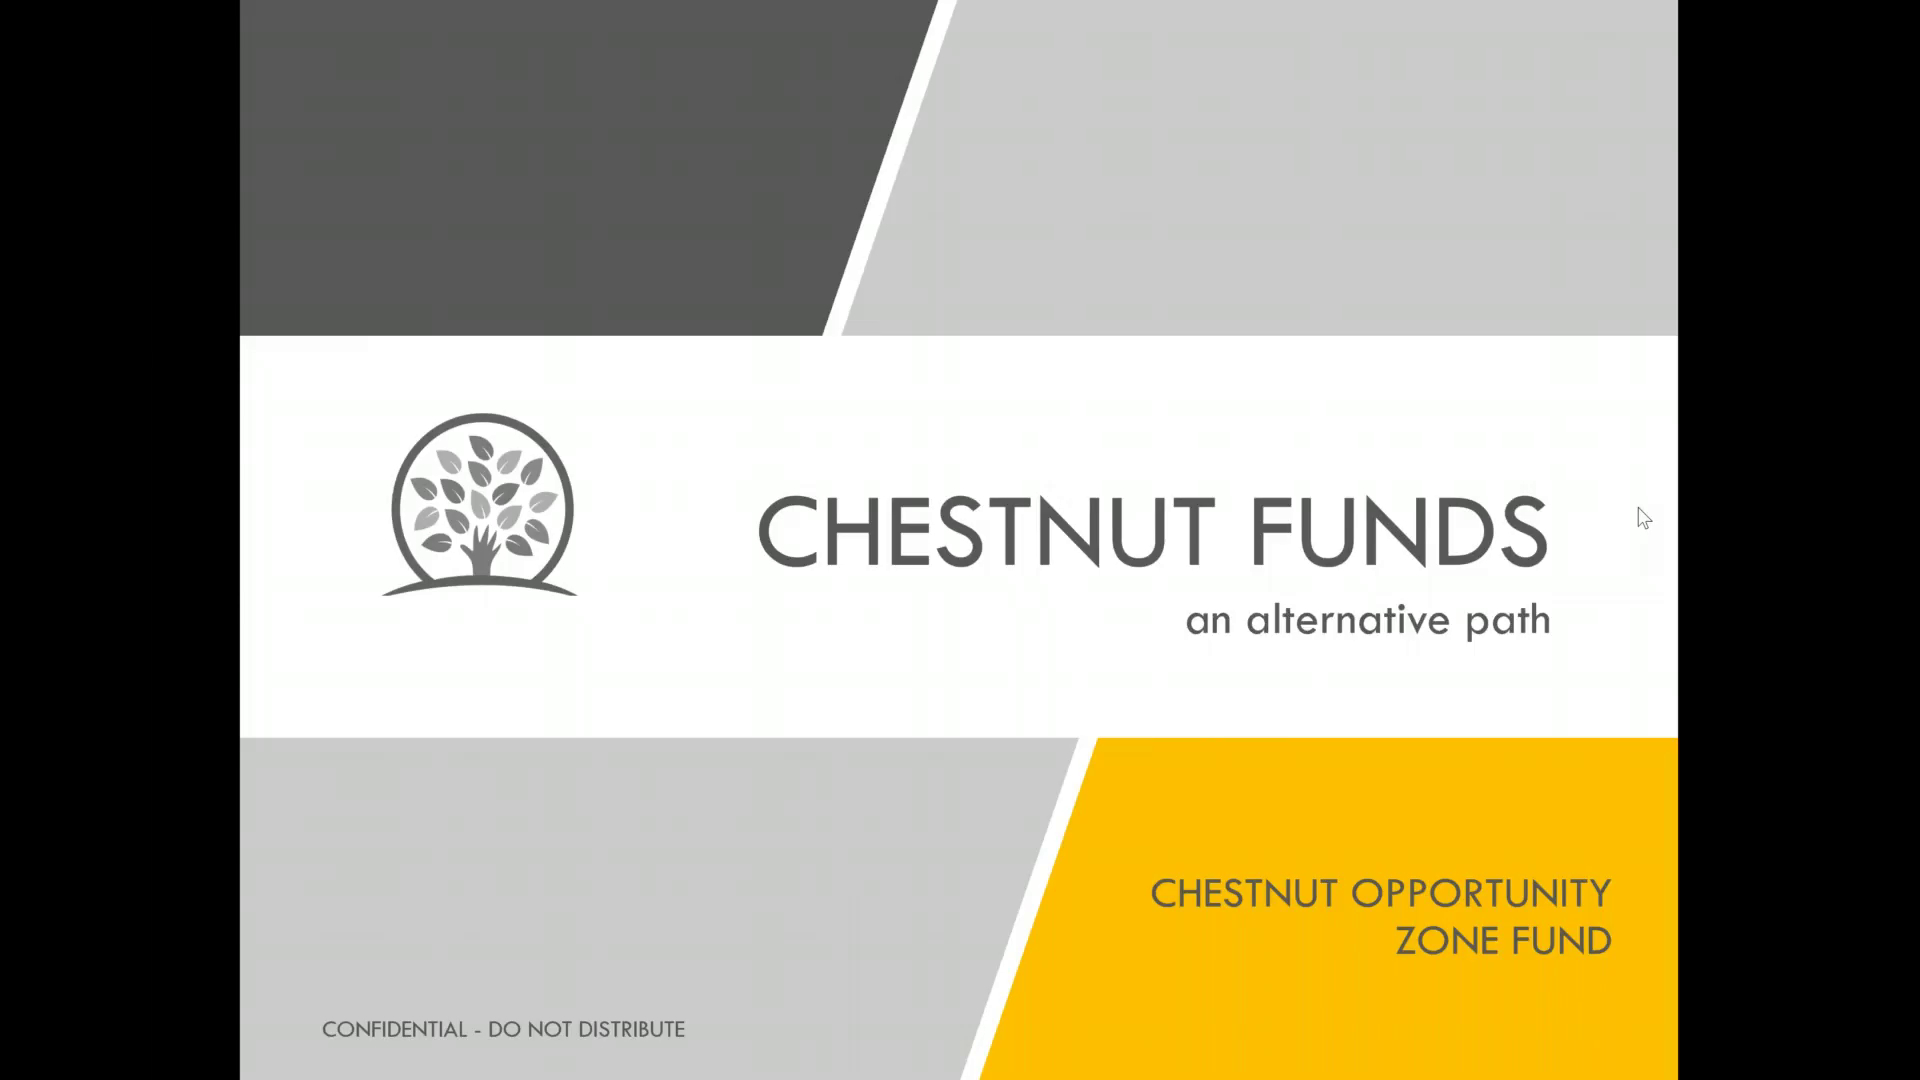 Investment Video - Chestnut Opportunity Zone Fund